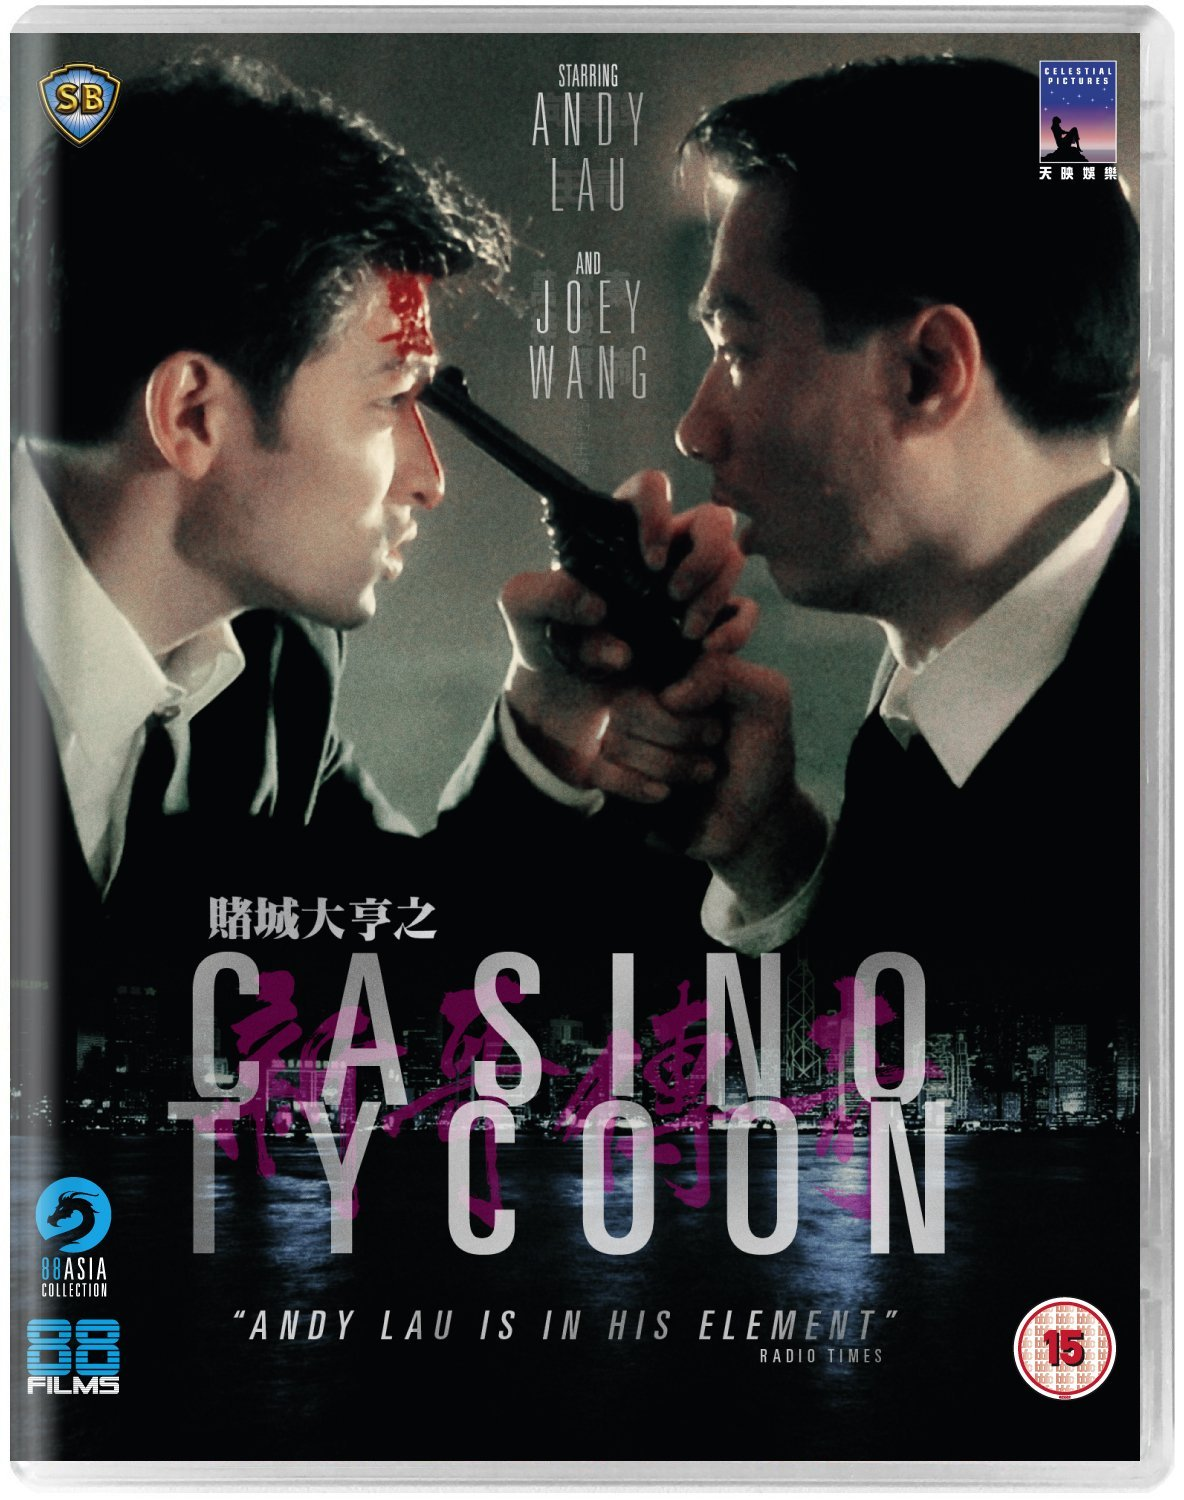 Casino tycoon full movie download governor of poker 2 premium edition portable